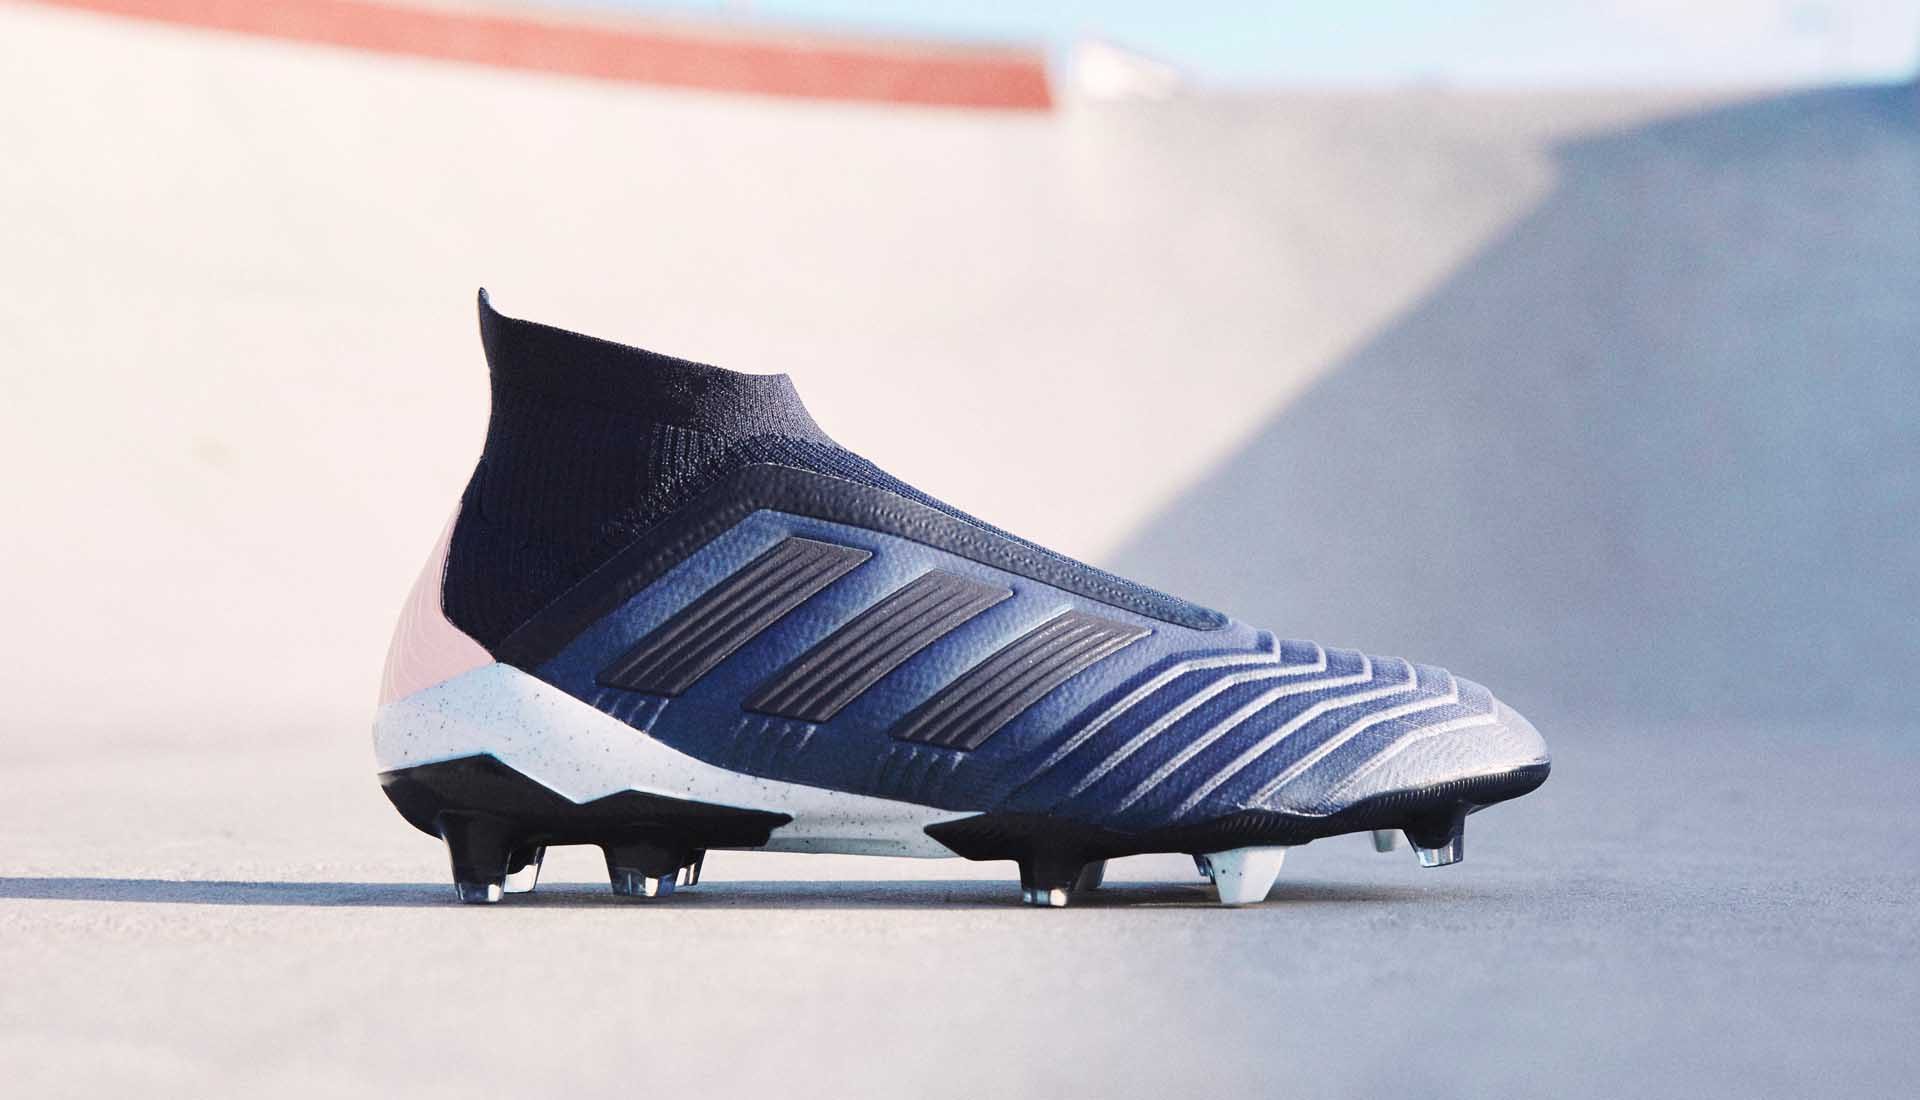 jurado Imaginación juicio  adidas Launch The Predator 18+